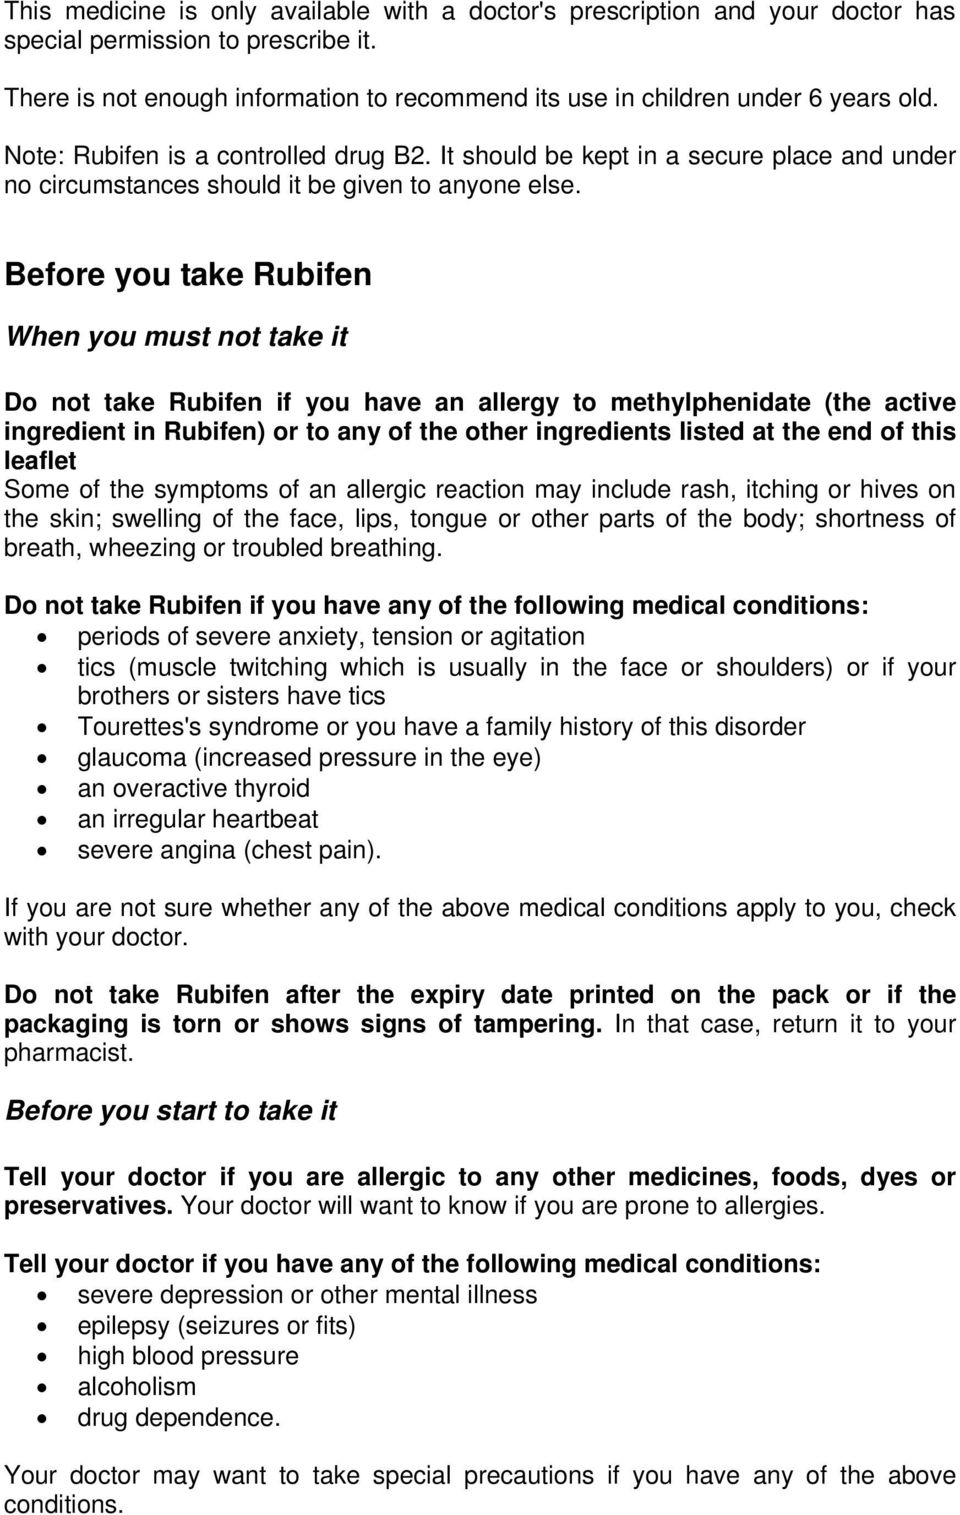 Before you take Rubifen When you must not take it Do not take Rubifen if you have an allergy to methylphenidate (the active ingredient in Rubifen) or to any of the other ingredients listed at the end